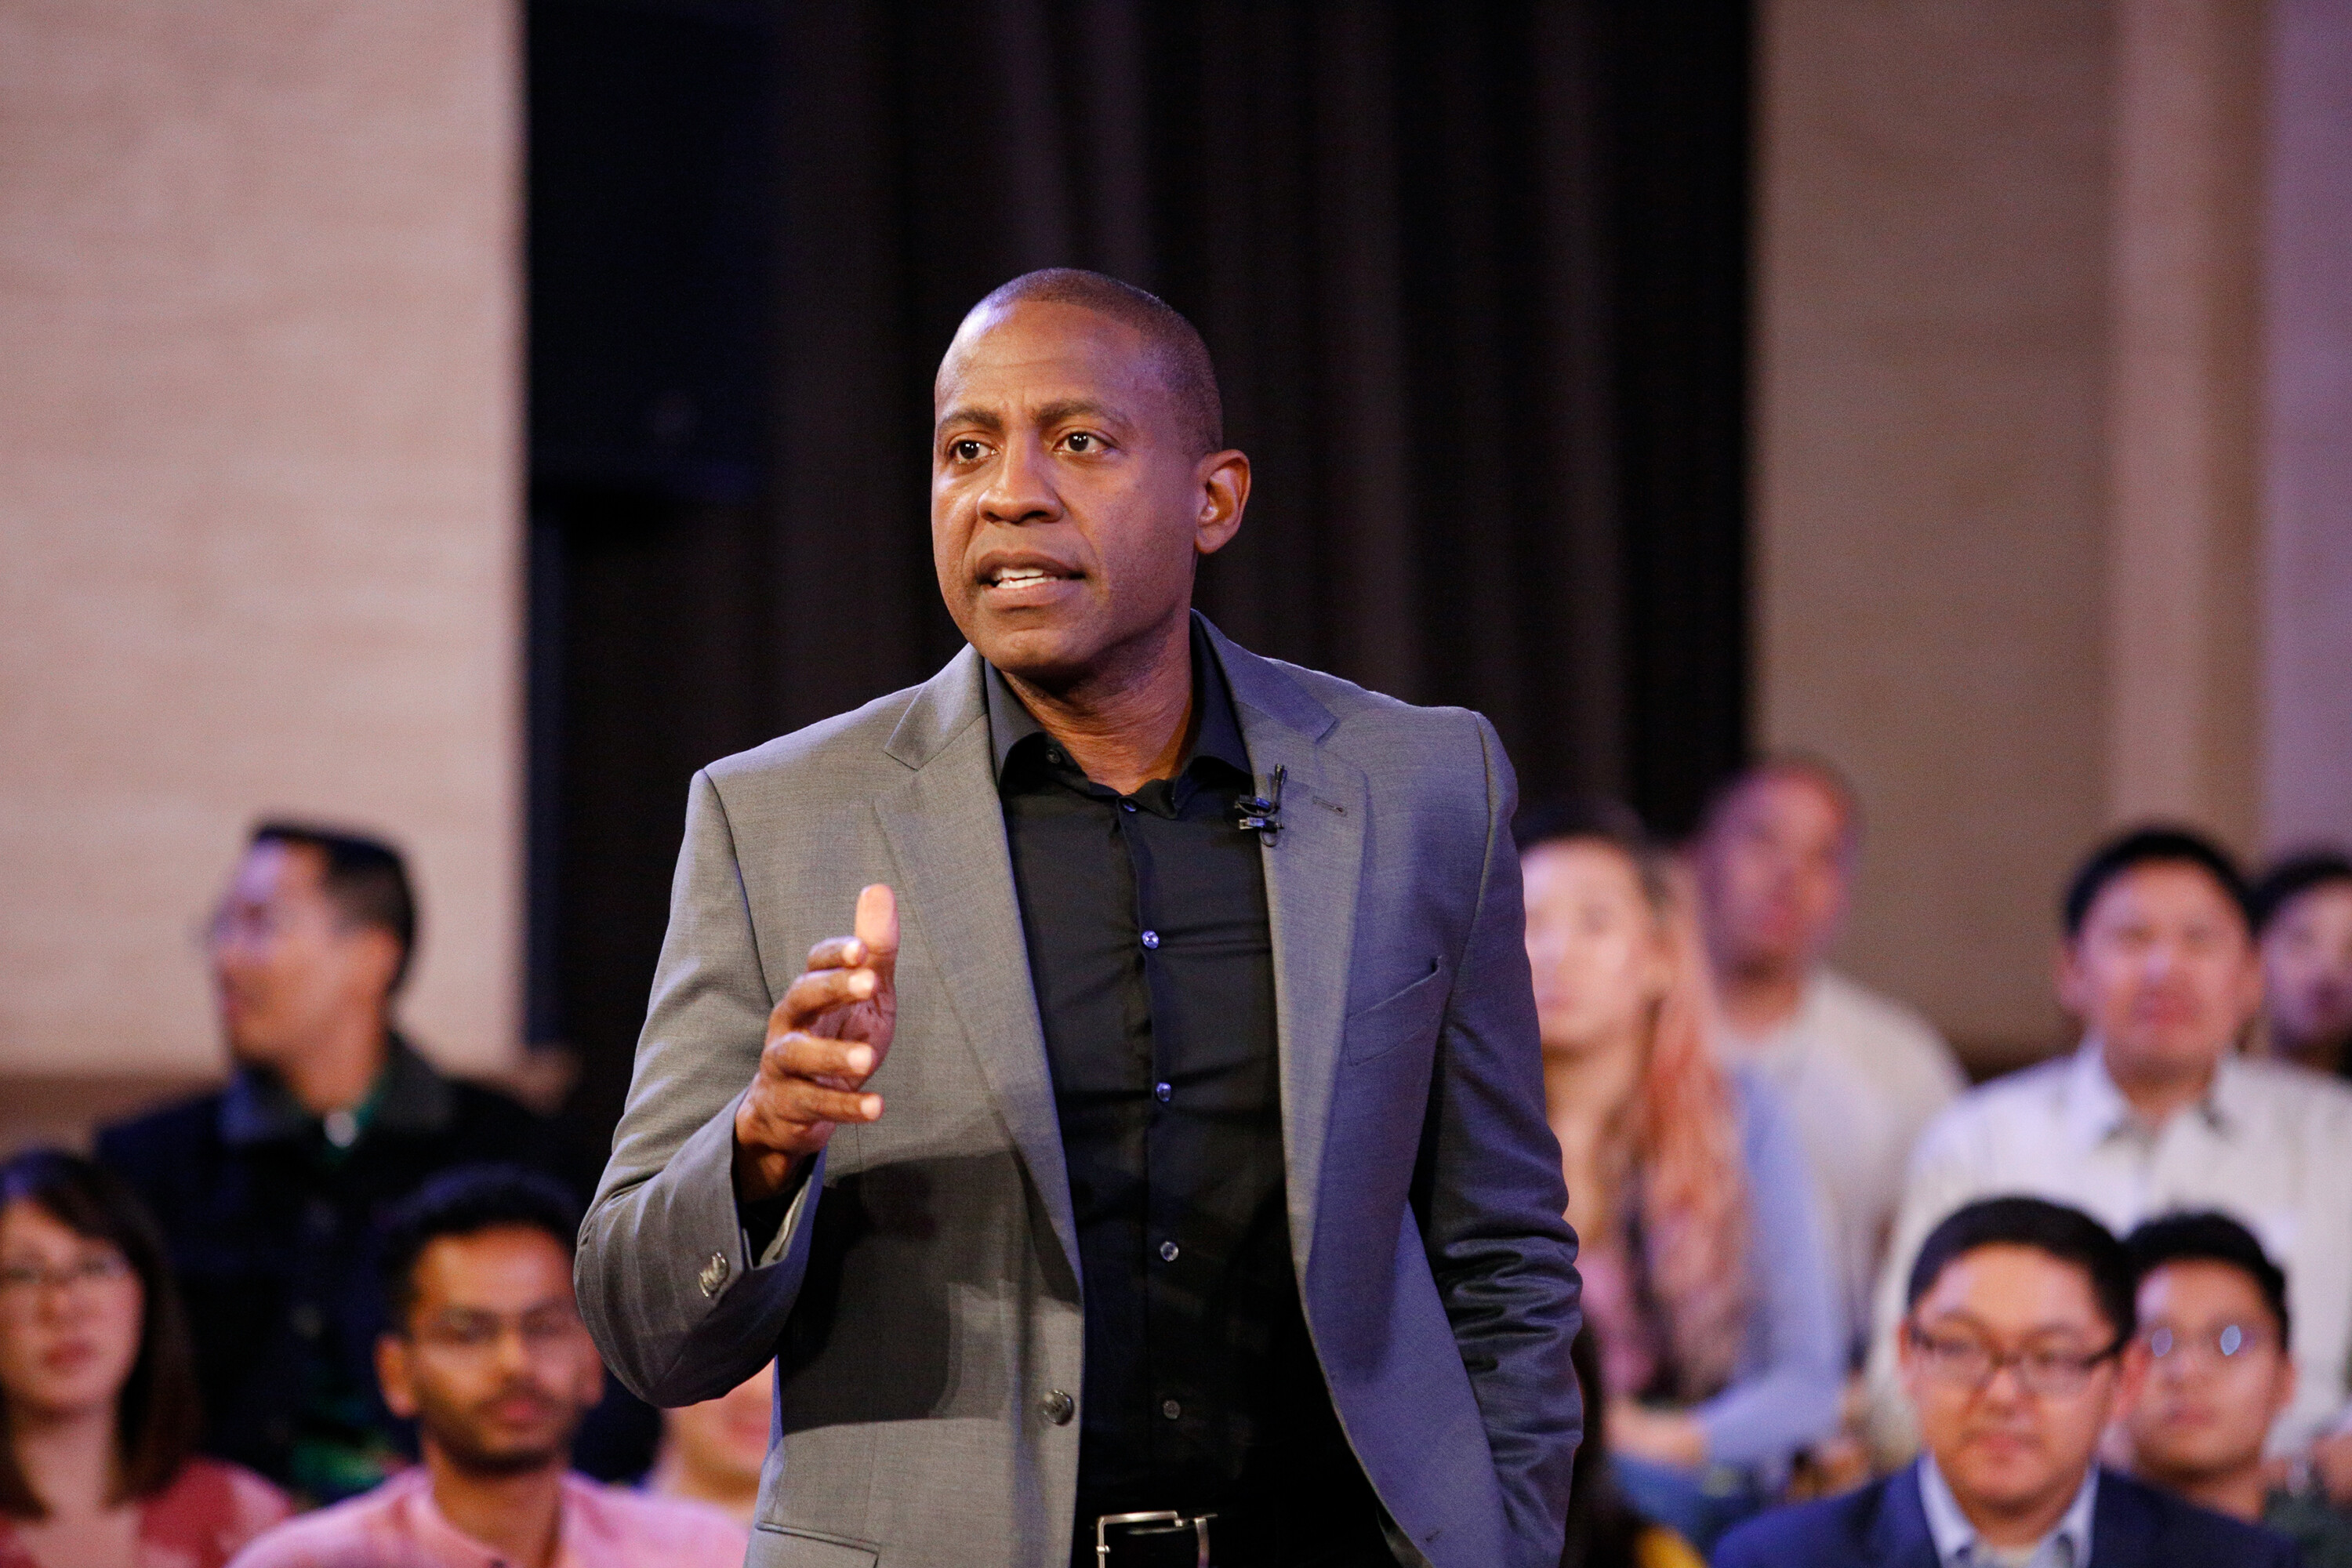 Ozy Media CEO Carlos Watson claims his media startup is no longer shutting down